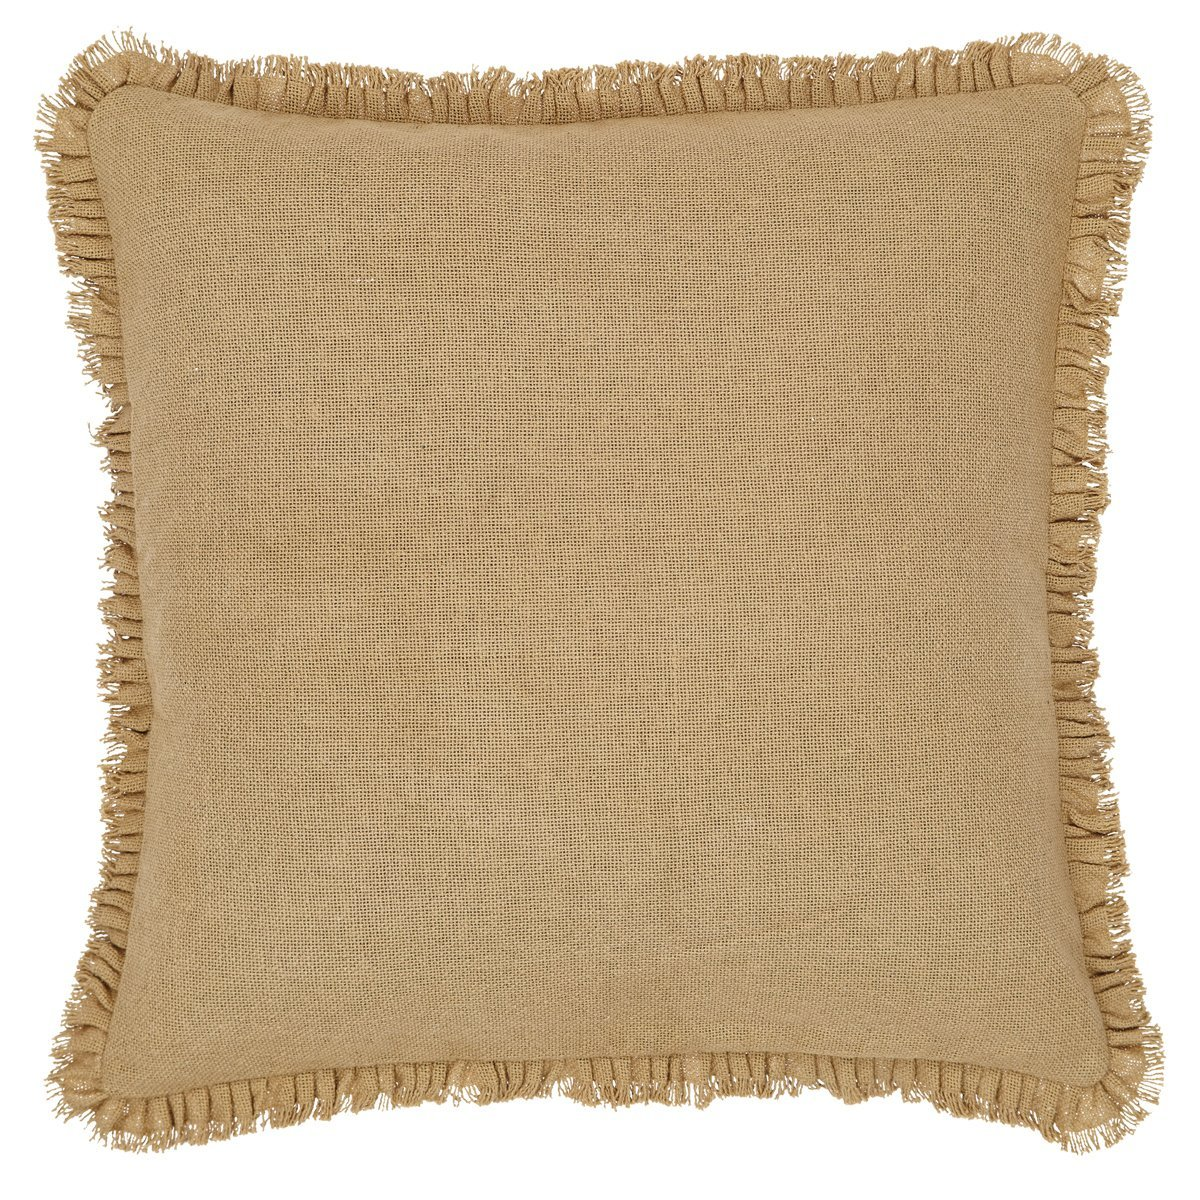 Amazon.com: Burlap Natural Fabric Euro Sham w/ Fringed Ruffle ...